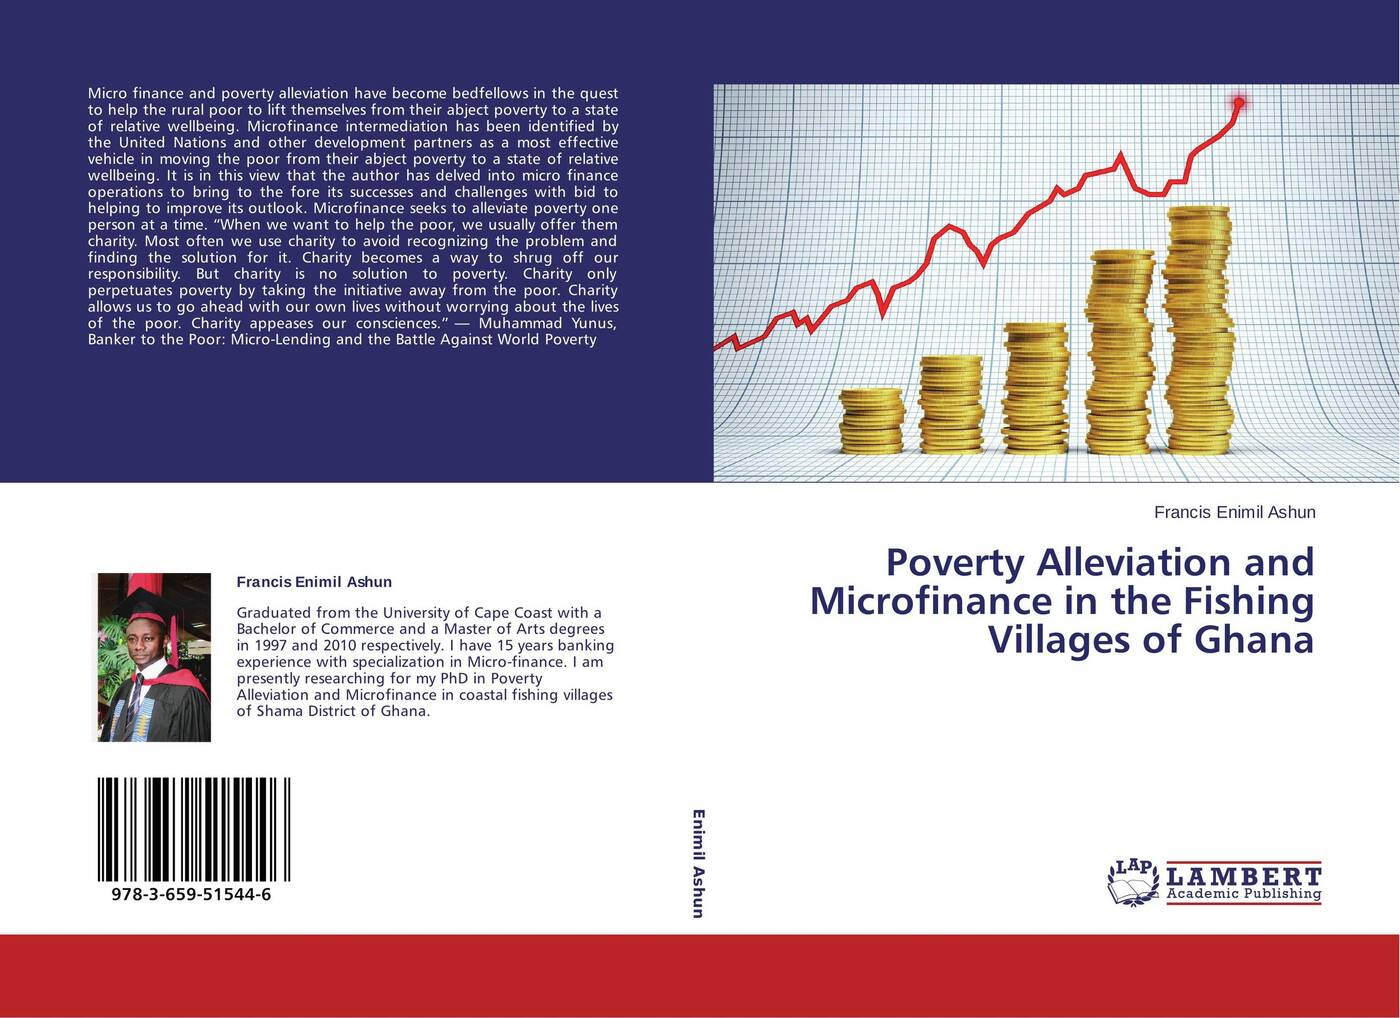 Francis Enimil Ashun Poverty Alleviation and Microfinance in the Fishing Villages of Ghana persistence of poverty in rural ghana